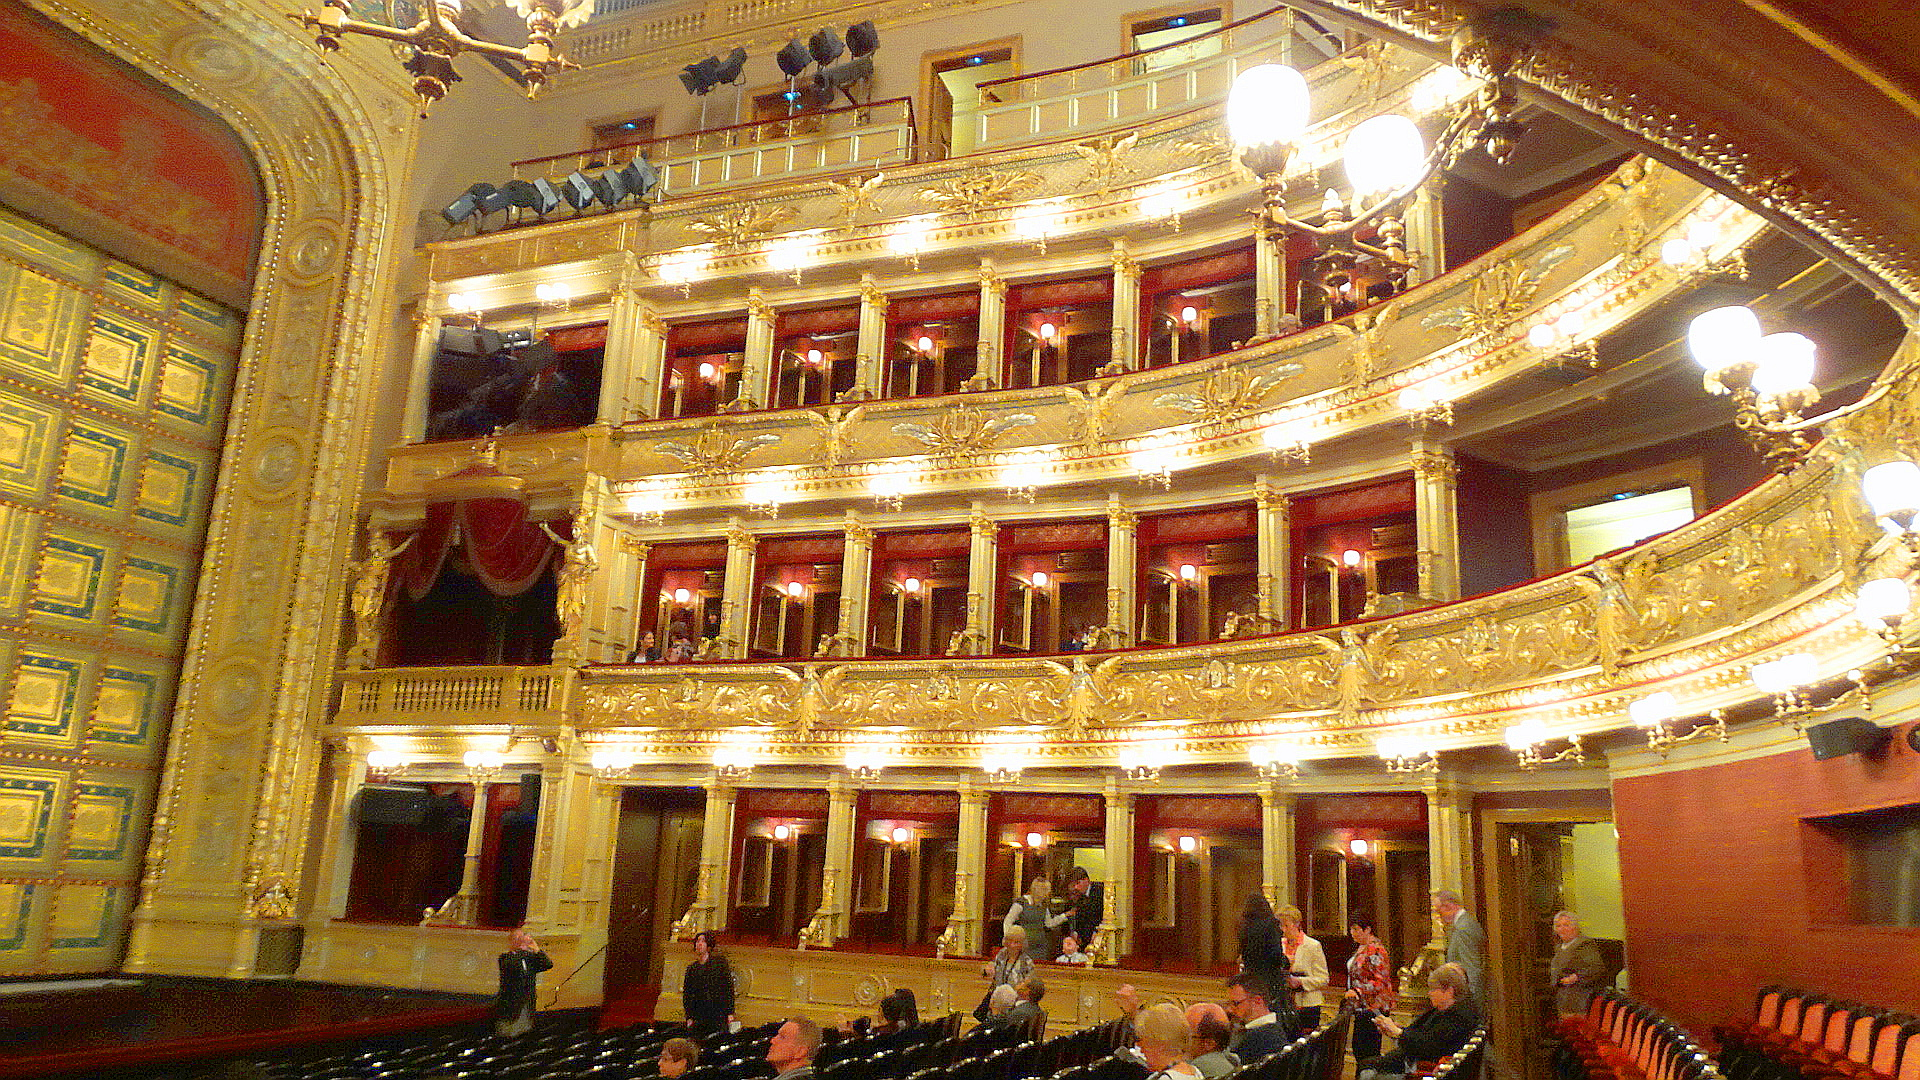 national theatre in prague The national theatre is the place to come if you want to see opera, theater or ballet in prague prices vary greatly depending on the company and show you can score cheap opera tickets for 50 .